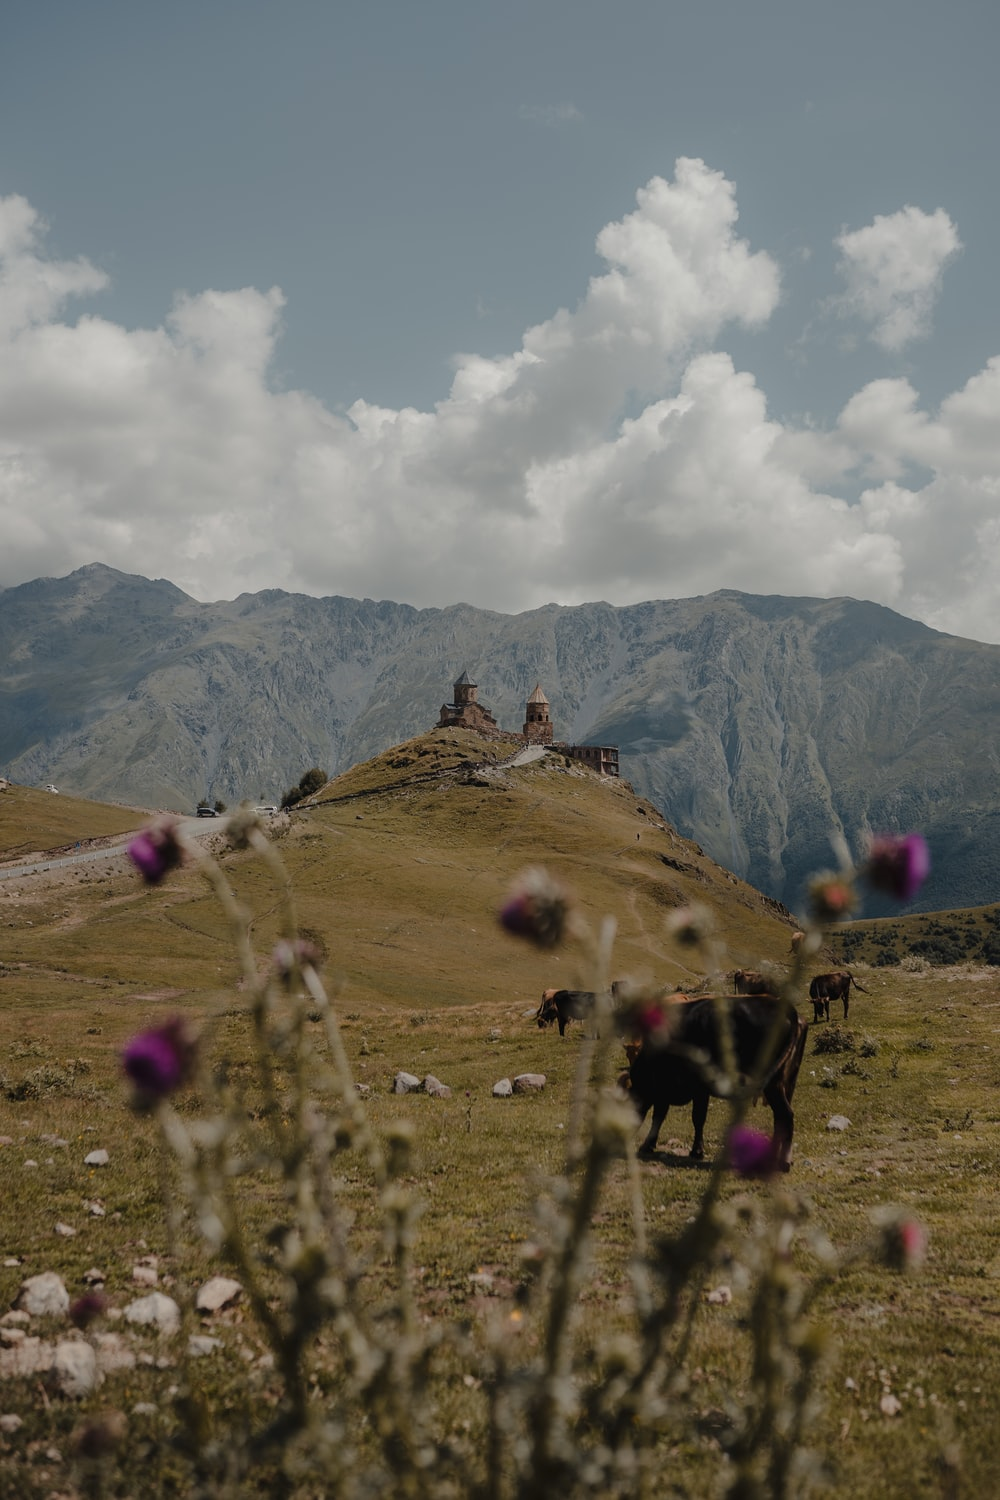 horses on green grass field near mountains under white clouds and blue sky during daytime